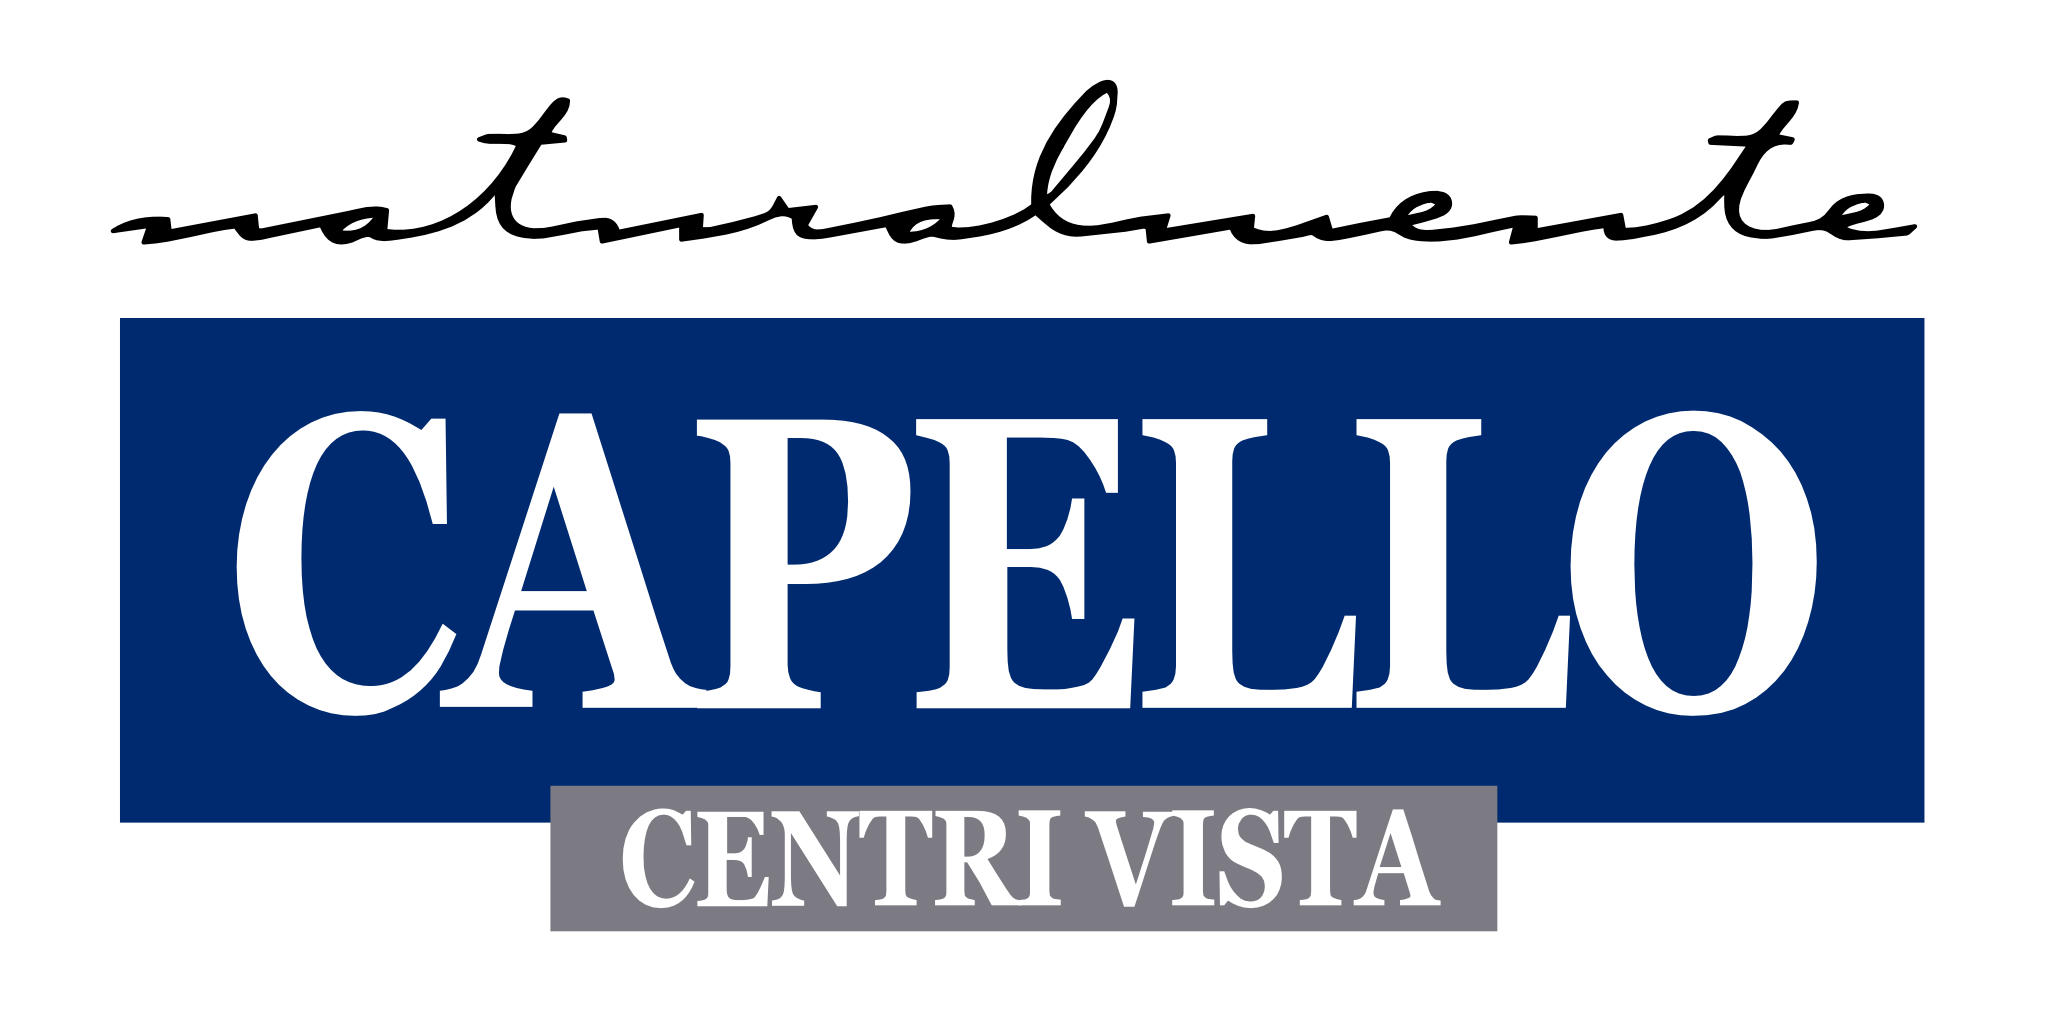 Capello-Centri-Vista-2-x-1